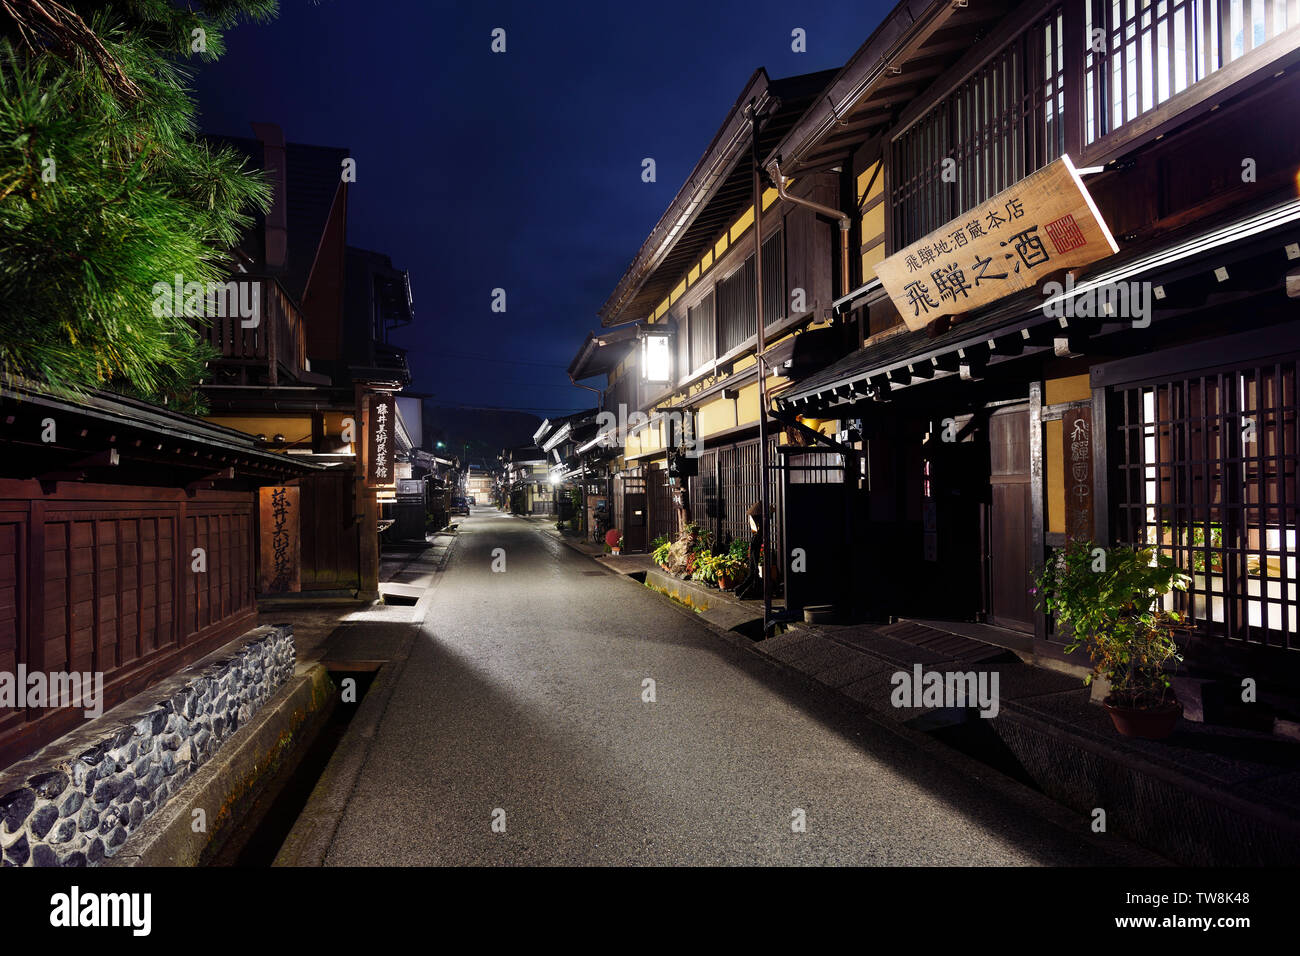 Nighttime scenery of Kamisannomachi, old town street of Takayama city, with lit up street lights and store signs. Kamisannomachi is a merchant town st - Stock Image